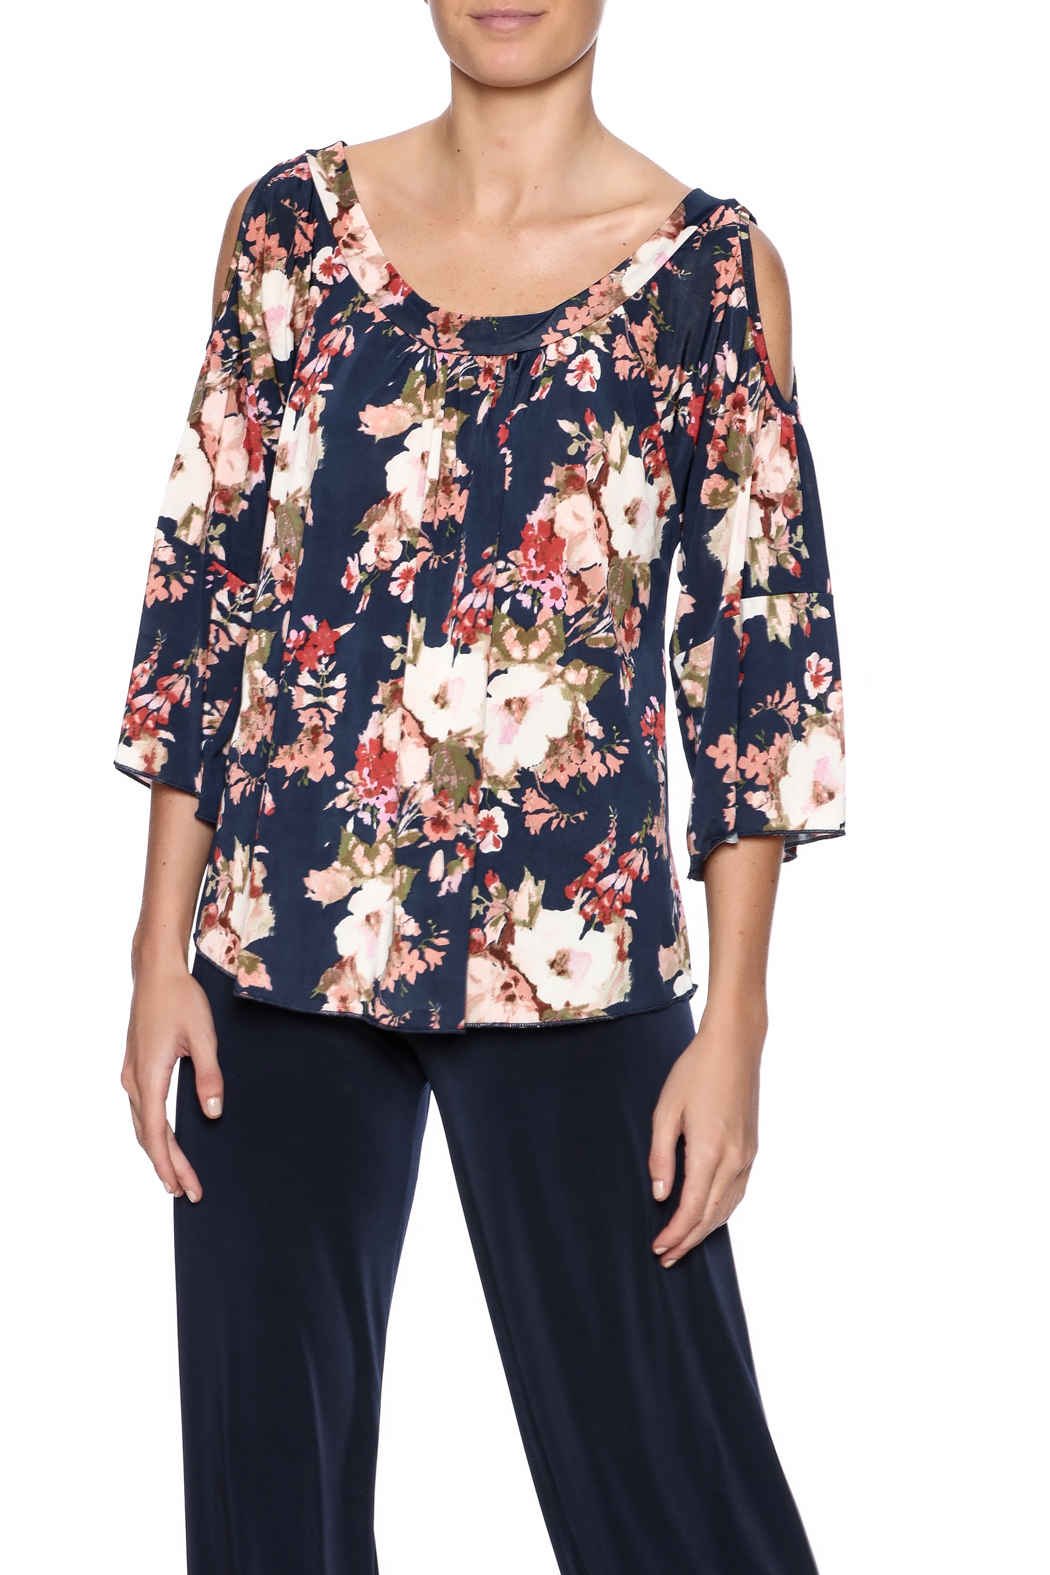 Veronica M Cold Shoulder Floral Top - Main Image